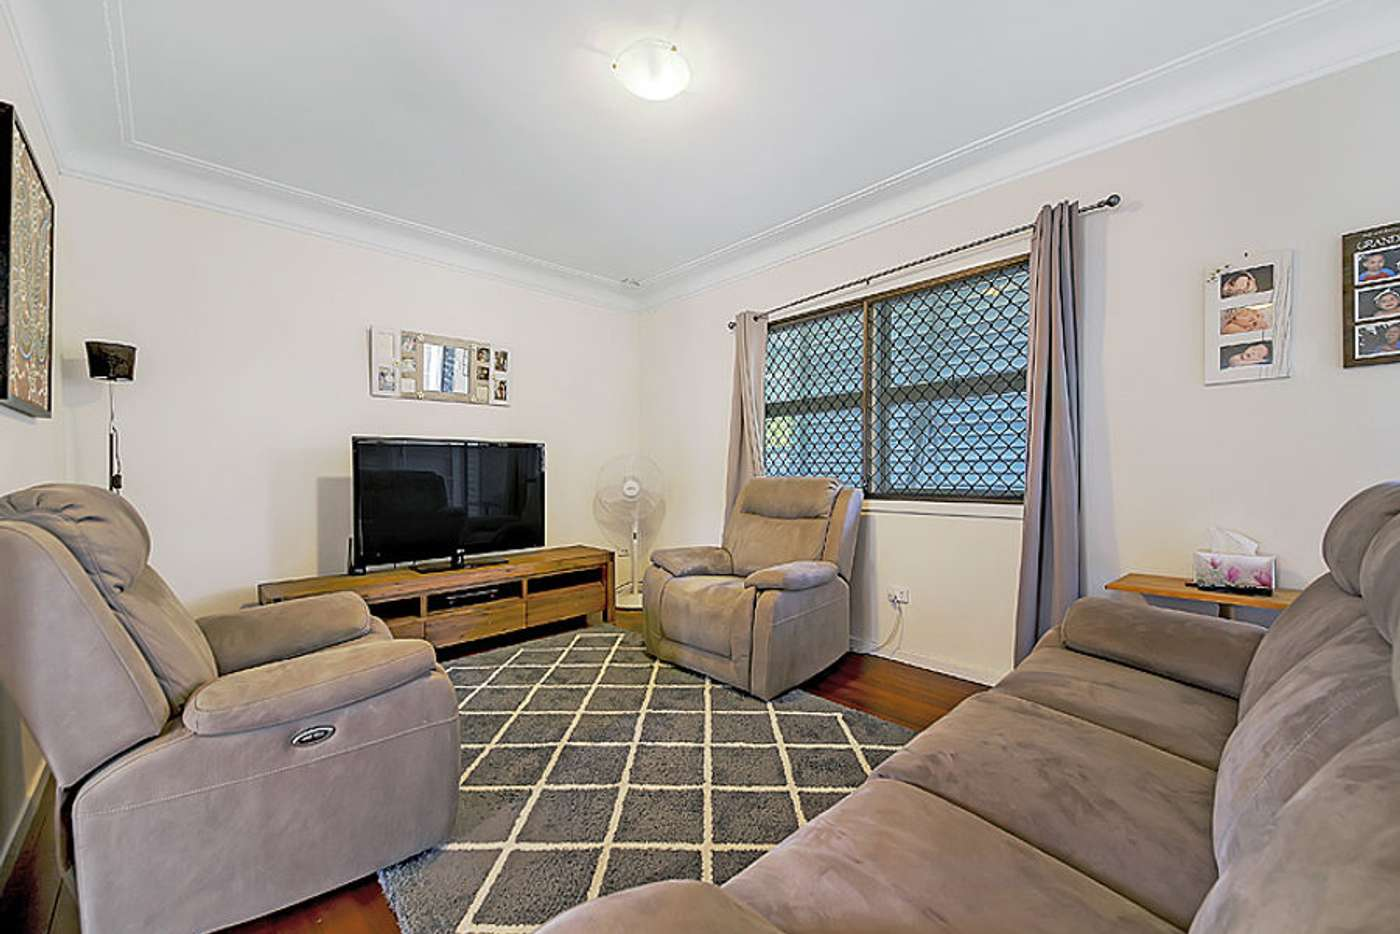 Sixth view of Homely house listing, 50 Gallipoli Road, Carina Heights QLD 4152